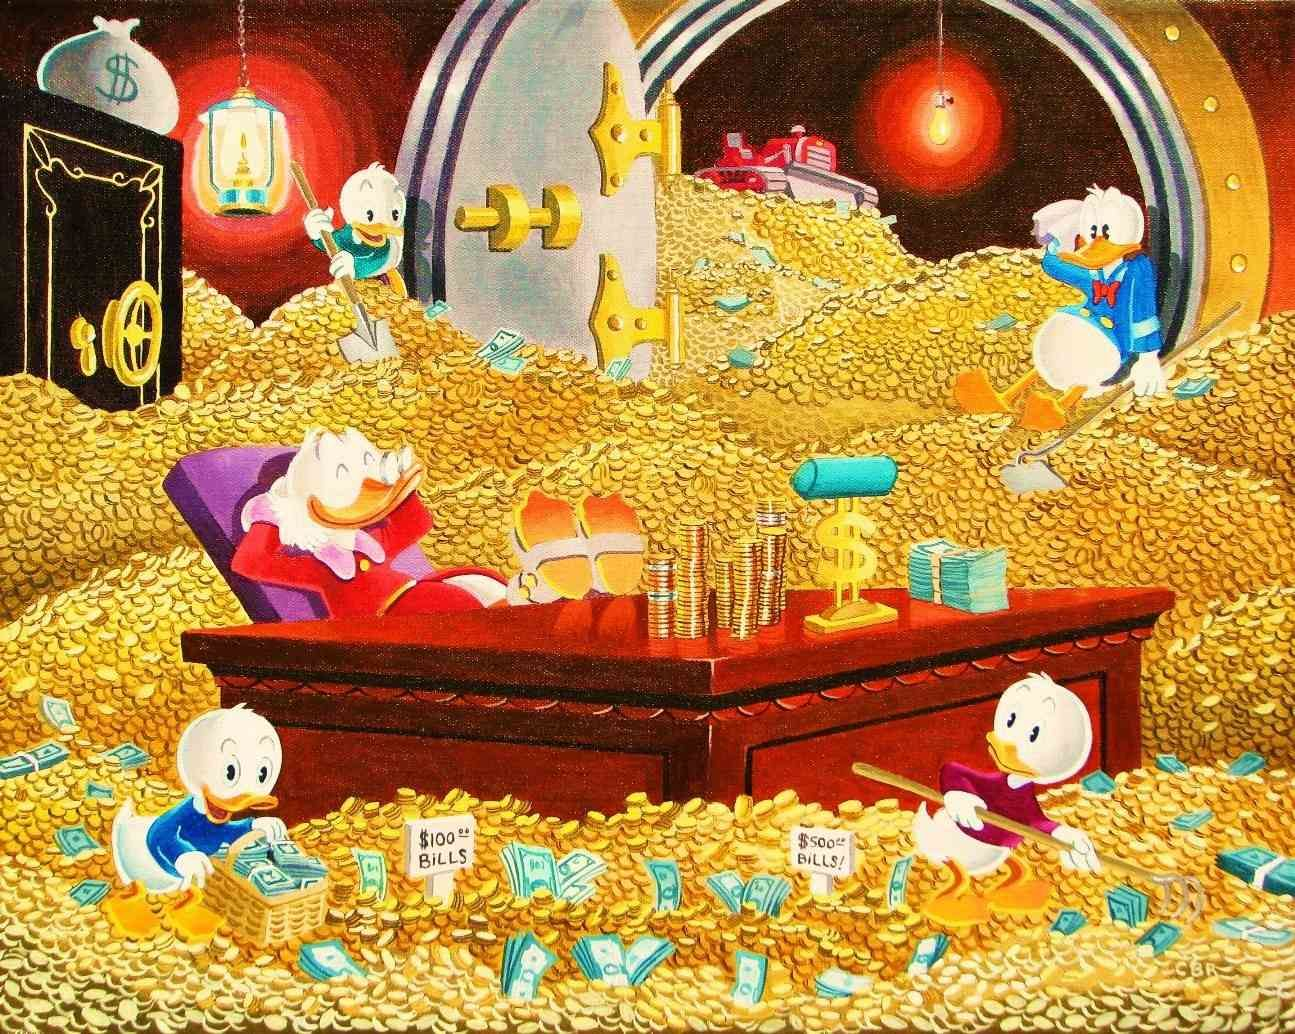 Scrooge Mcduck Donald Duck With Huey Louie And Dewey